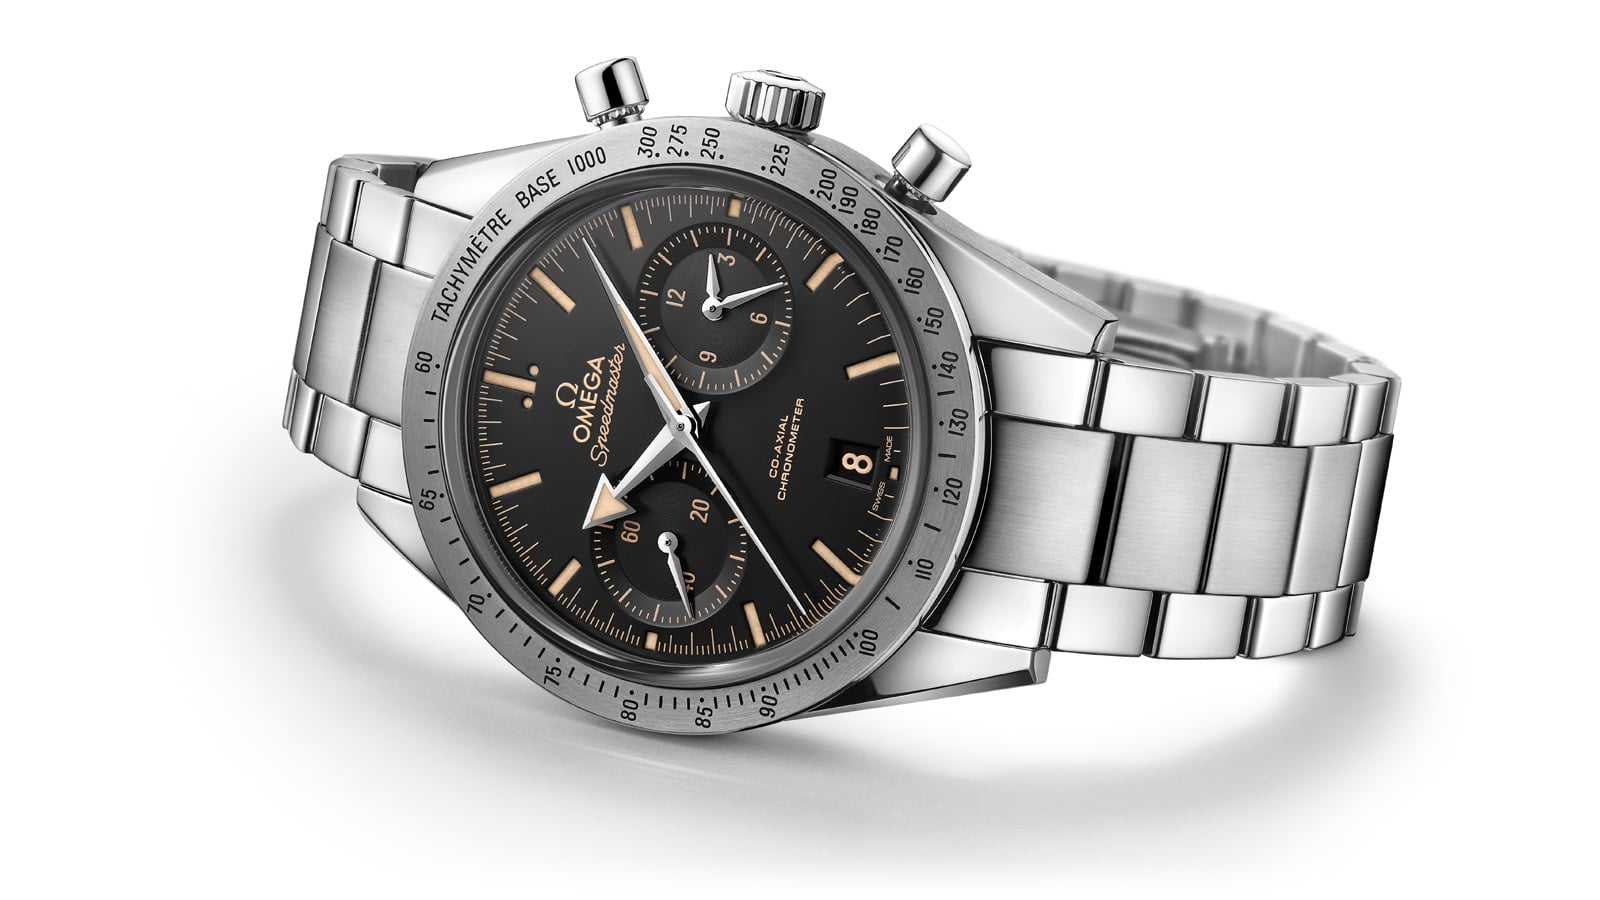 Omega Speedmaster '57 watch with a stainless steel case and bracelet and a black dial